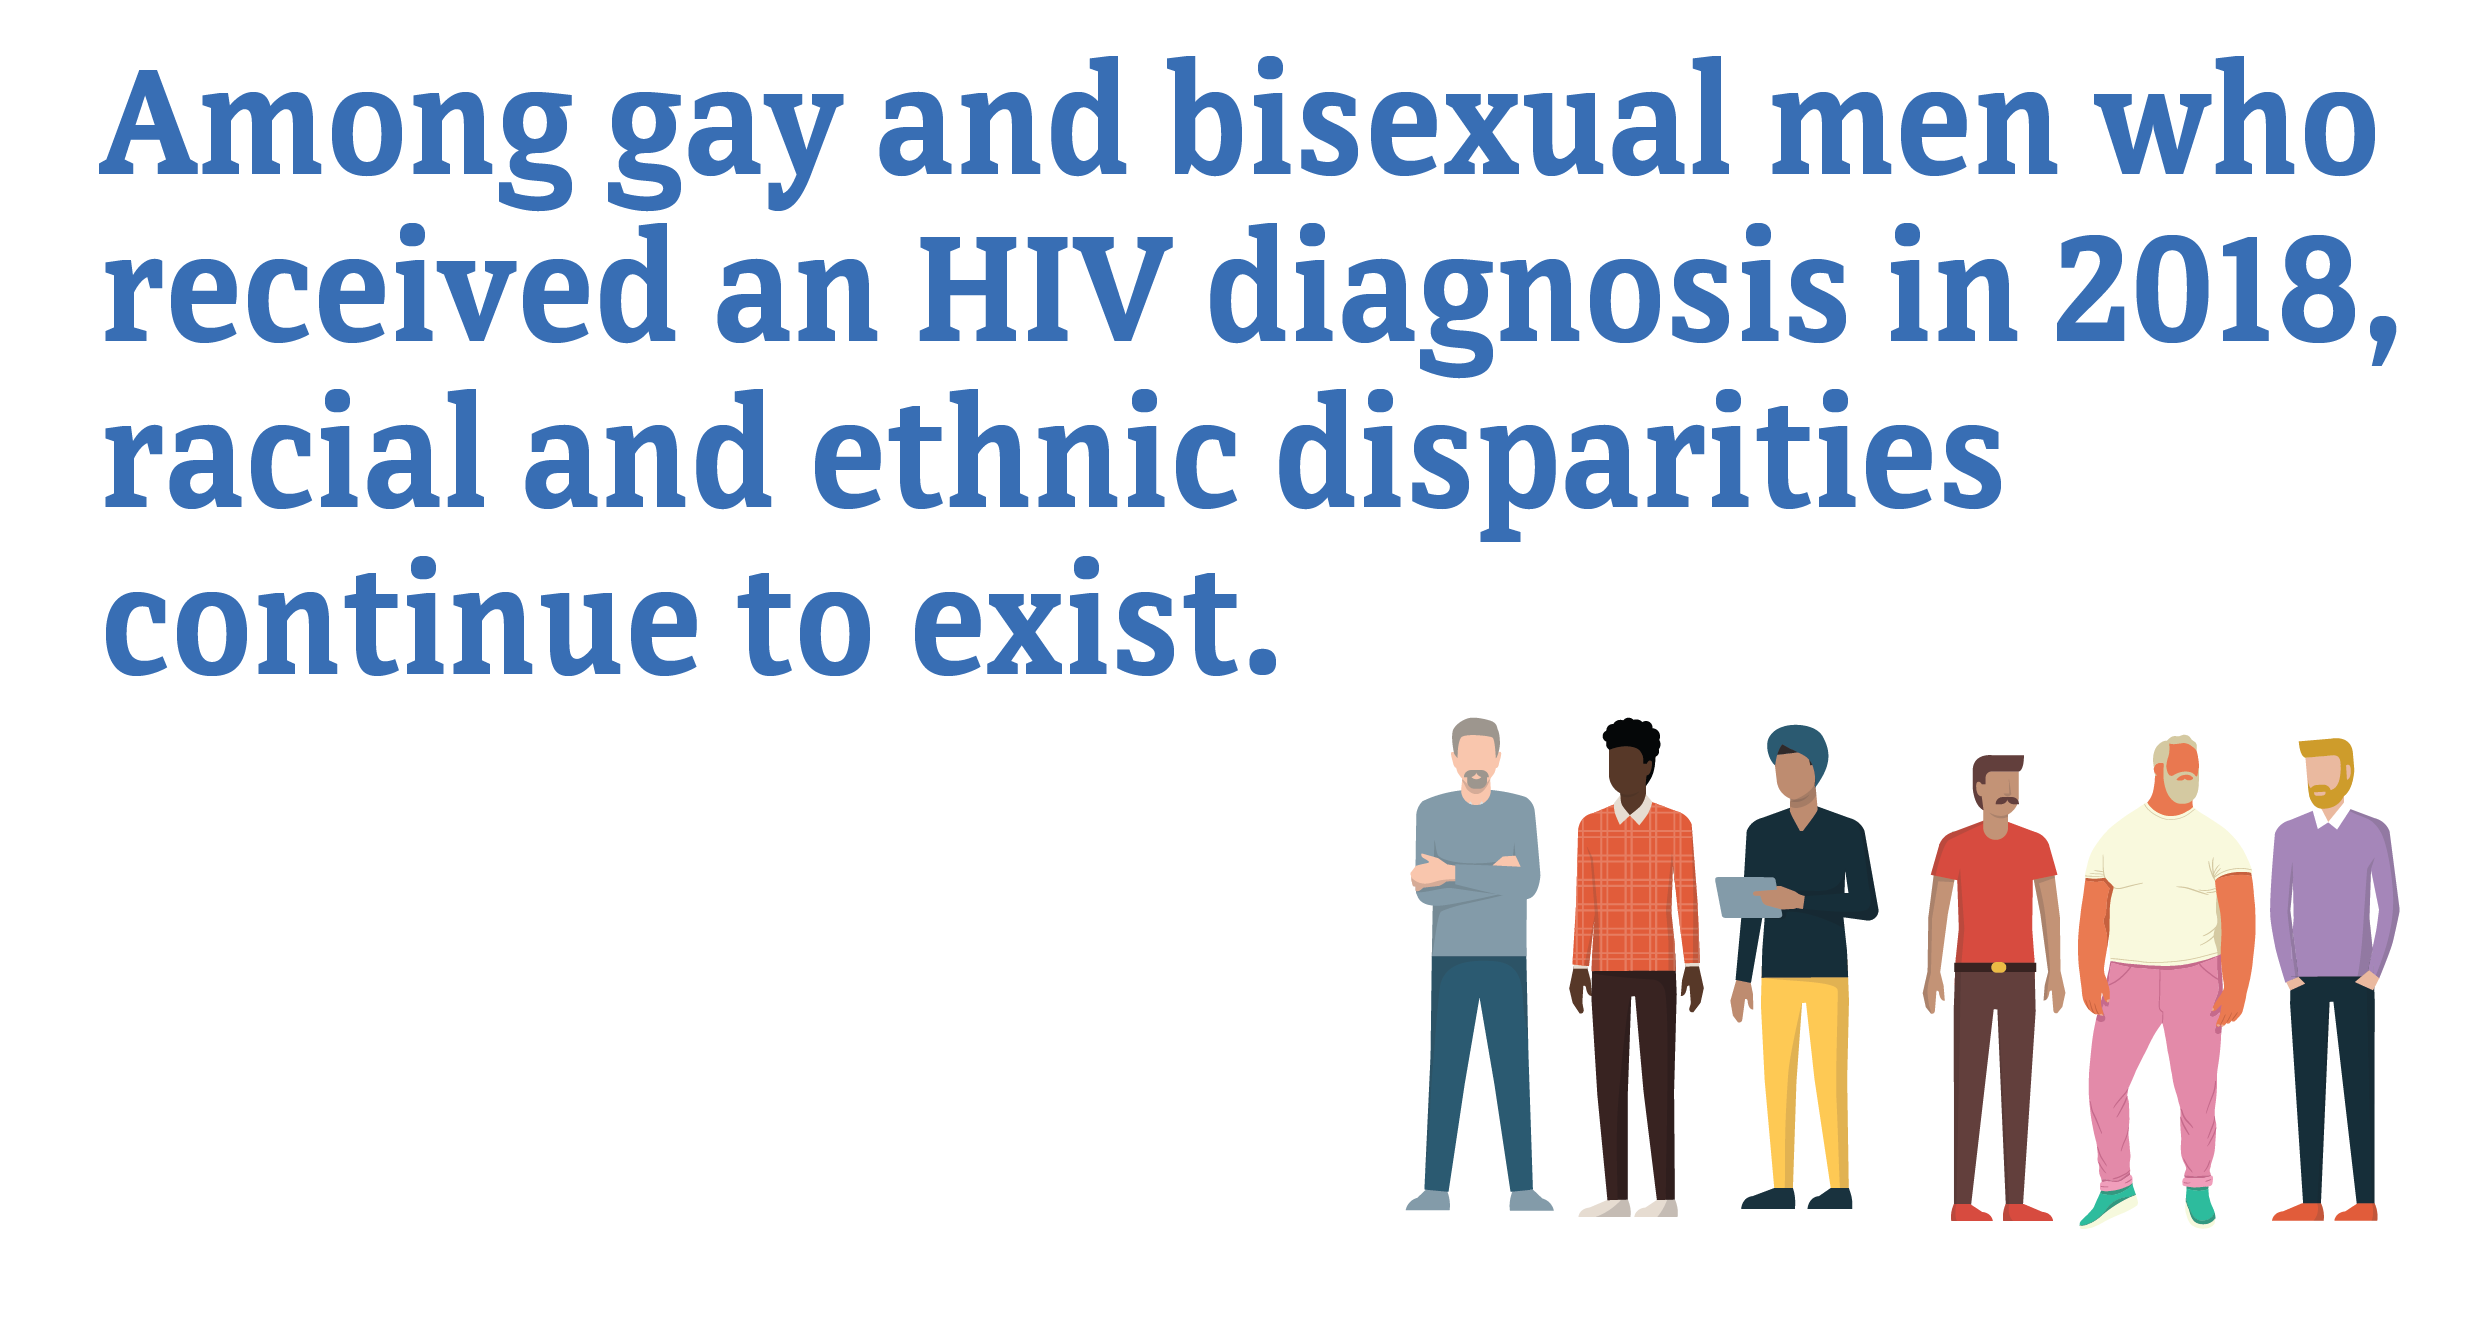 Among gay and bisexual men who received an HIV diagnosis in 2018, racial and ethnic disparities continue to exist.